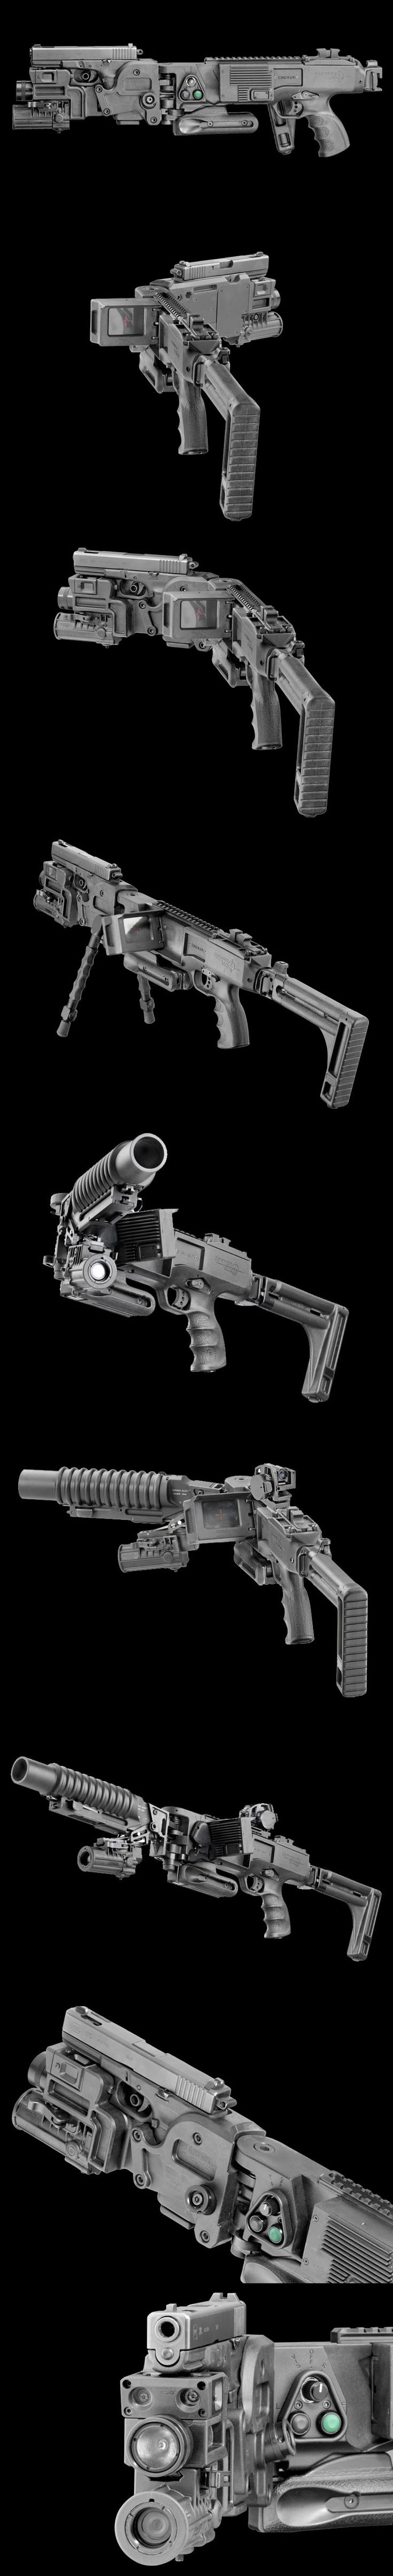 Israeli Corner Shot system with Glock 9mm and M203 Grenade launcher.